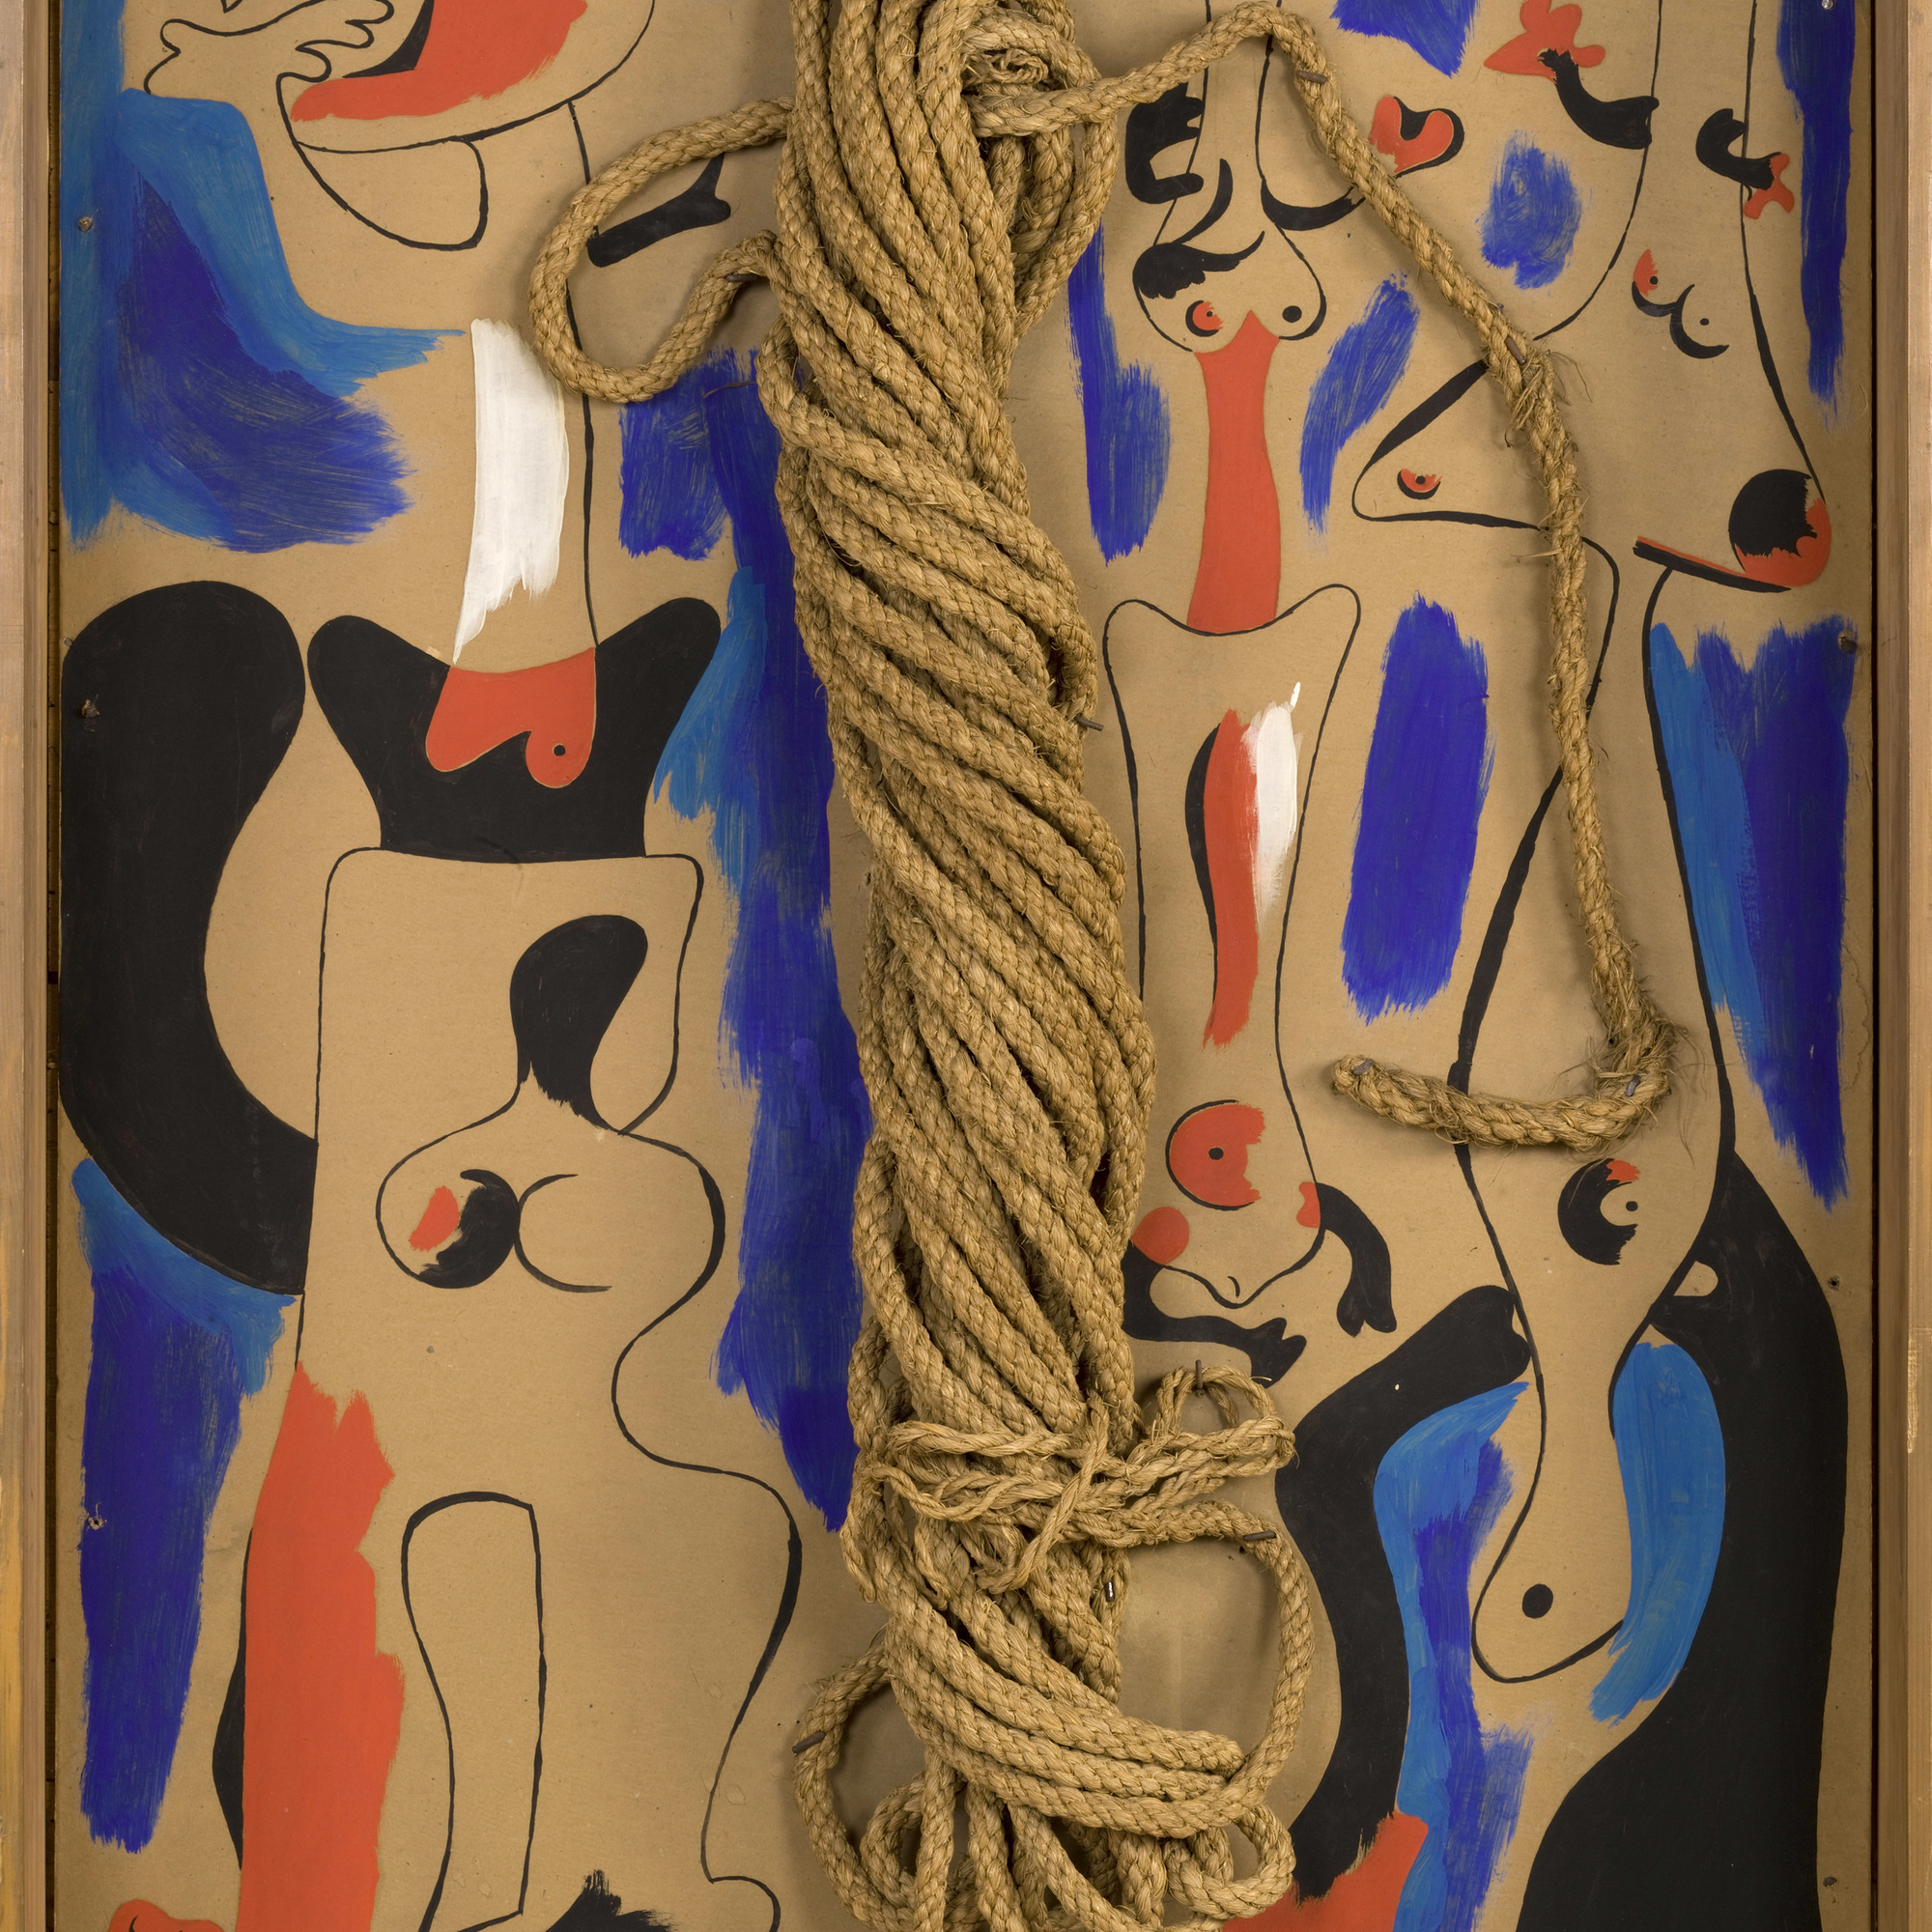 Joan Miró. Rope and People, I. 1935. Oil on cardboard mounted on wood, with coil of rope. 41 1/4 × 29 3/8″ (104.8 × 74.6 cm). Gift of the Pierre Matisse Gallery. © 2016 Successió Miró / Artists Rights Society (ARS), New York / ADAGP, Paris